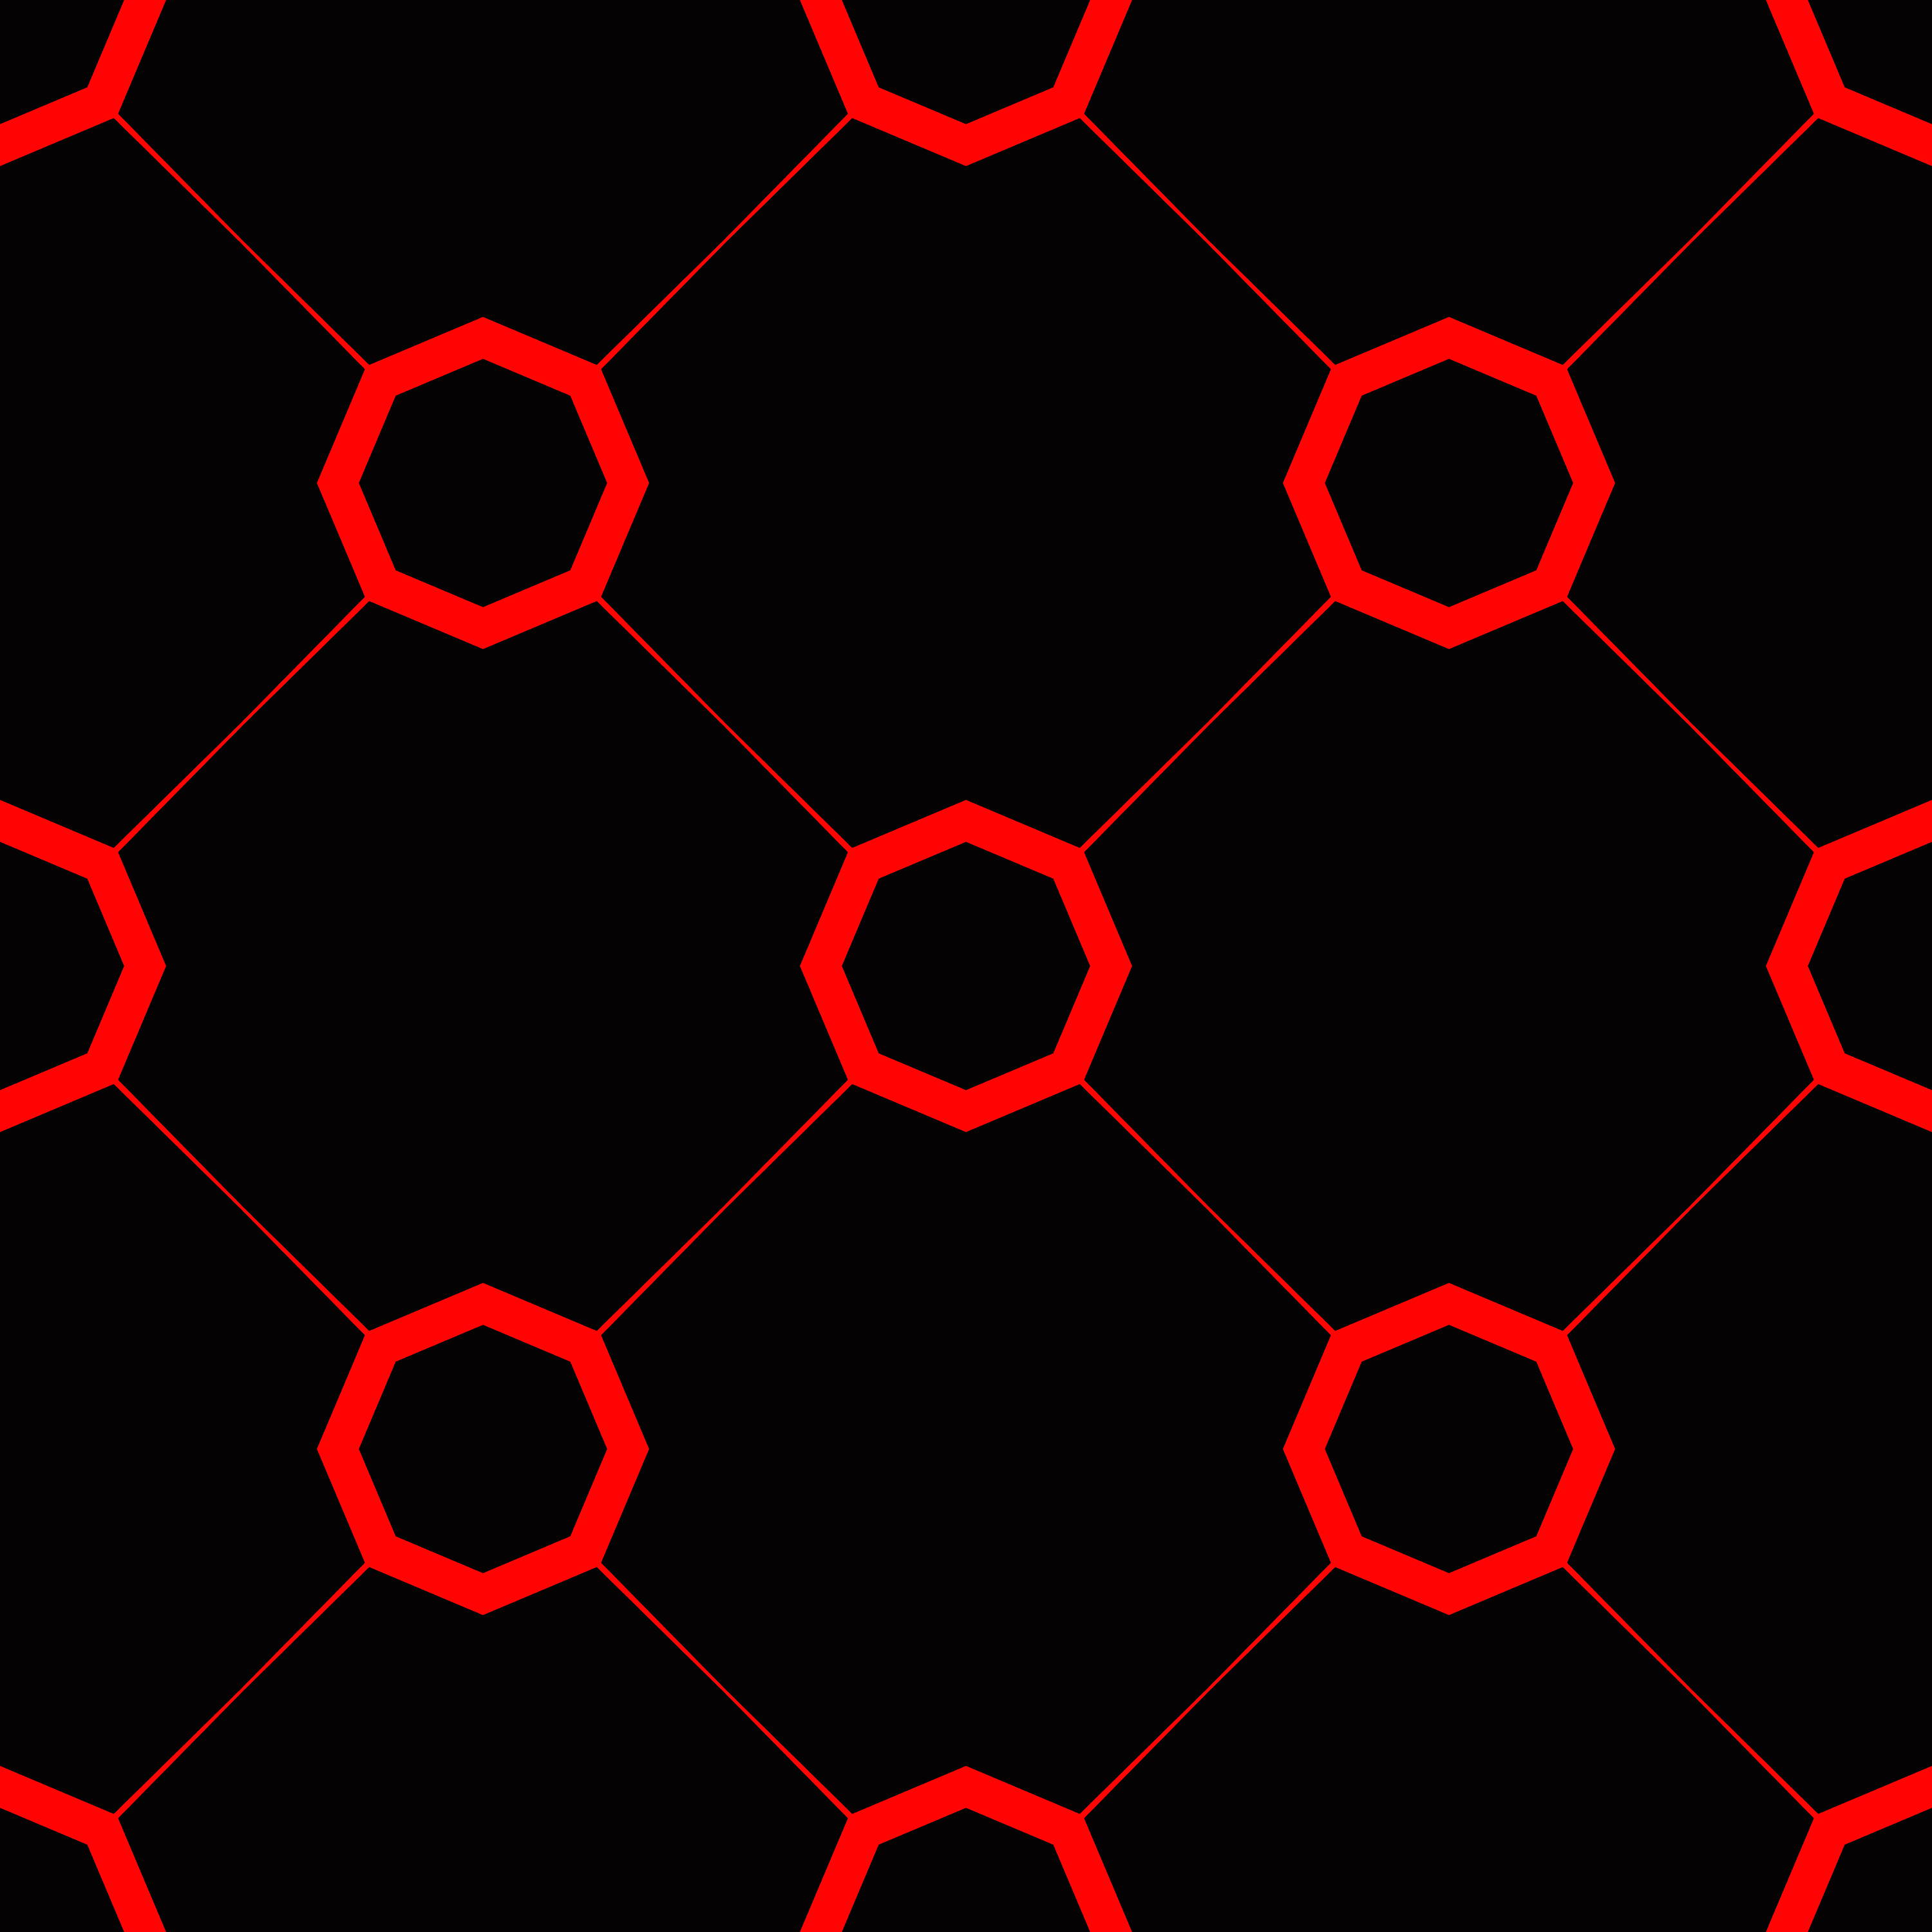 131651 download wallpaper Textures, Texture, Lines, Circles, Patterns screensavers and pictures for free